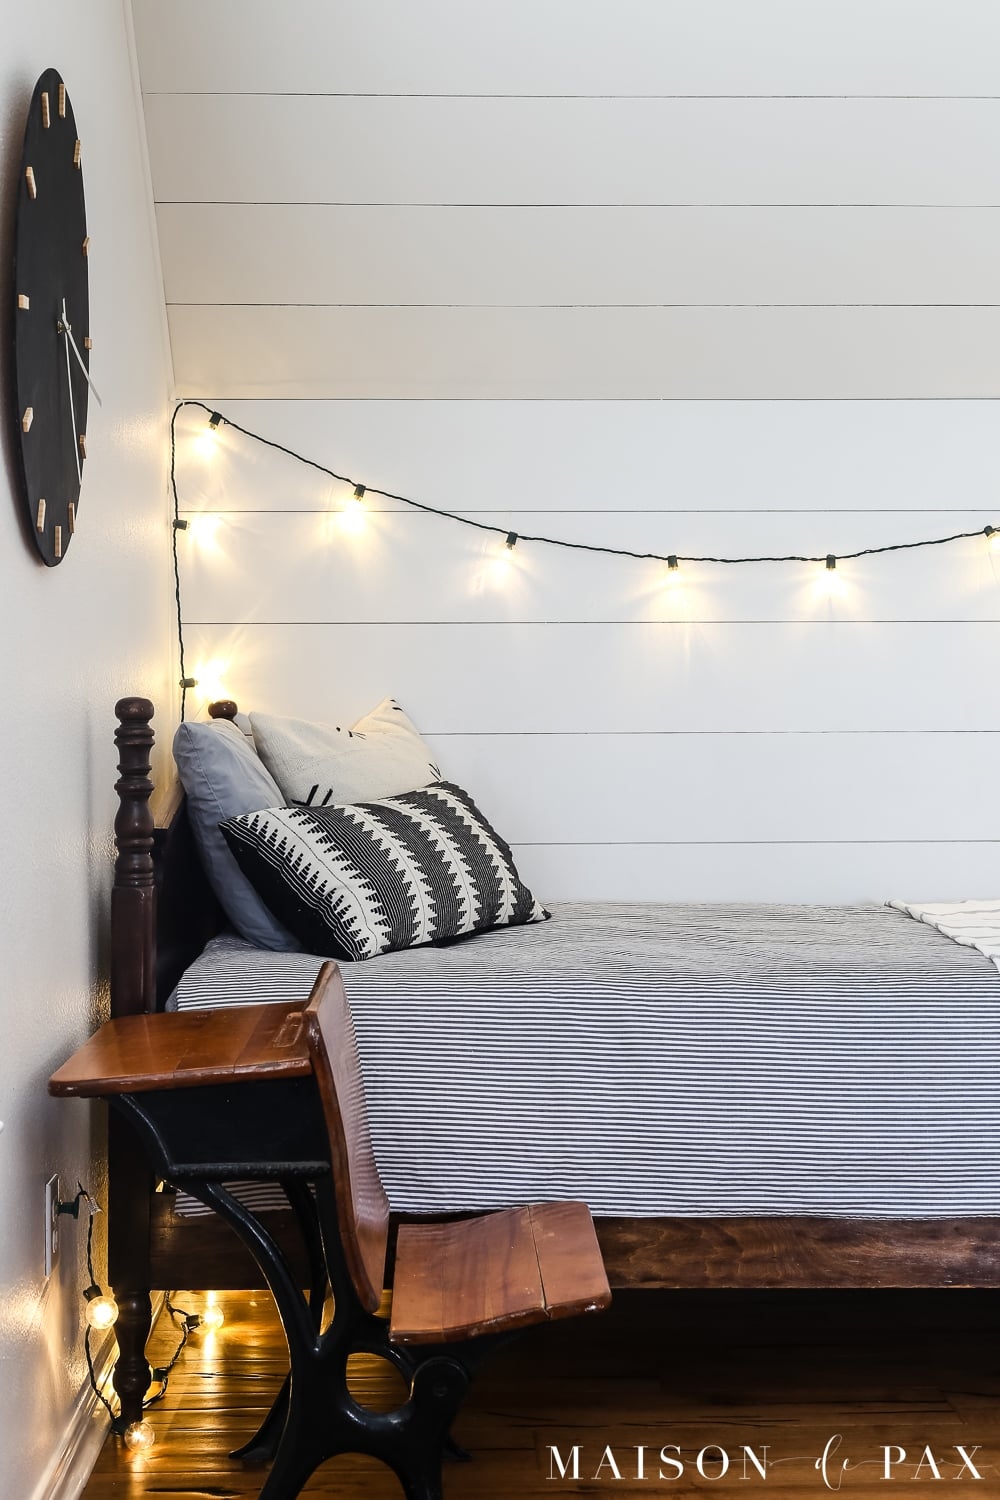 Plastic globe lights and wood wall clock for a boy's bed nook!  Learn how to make this DIY black and wood giant wall clock for cheap! #wallart #diywallart #diyclock #wallclock #giantclock #modernfarmhouse #neutraldecor #kidsroom #boyroom #modernfarmhouse #blackandwhiteinteriors